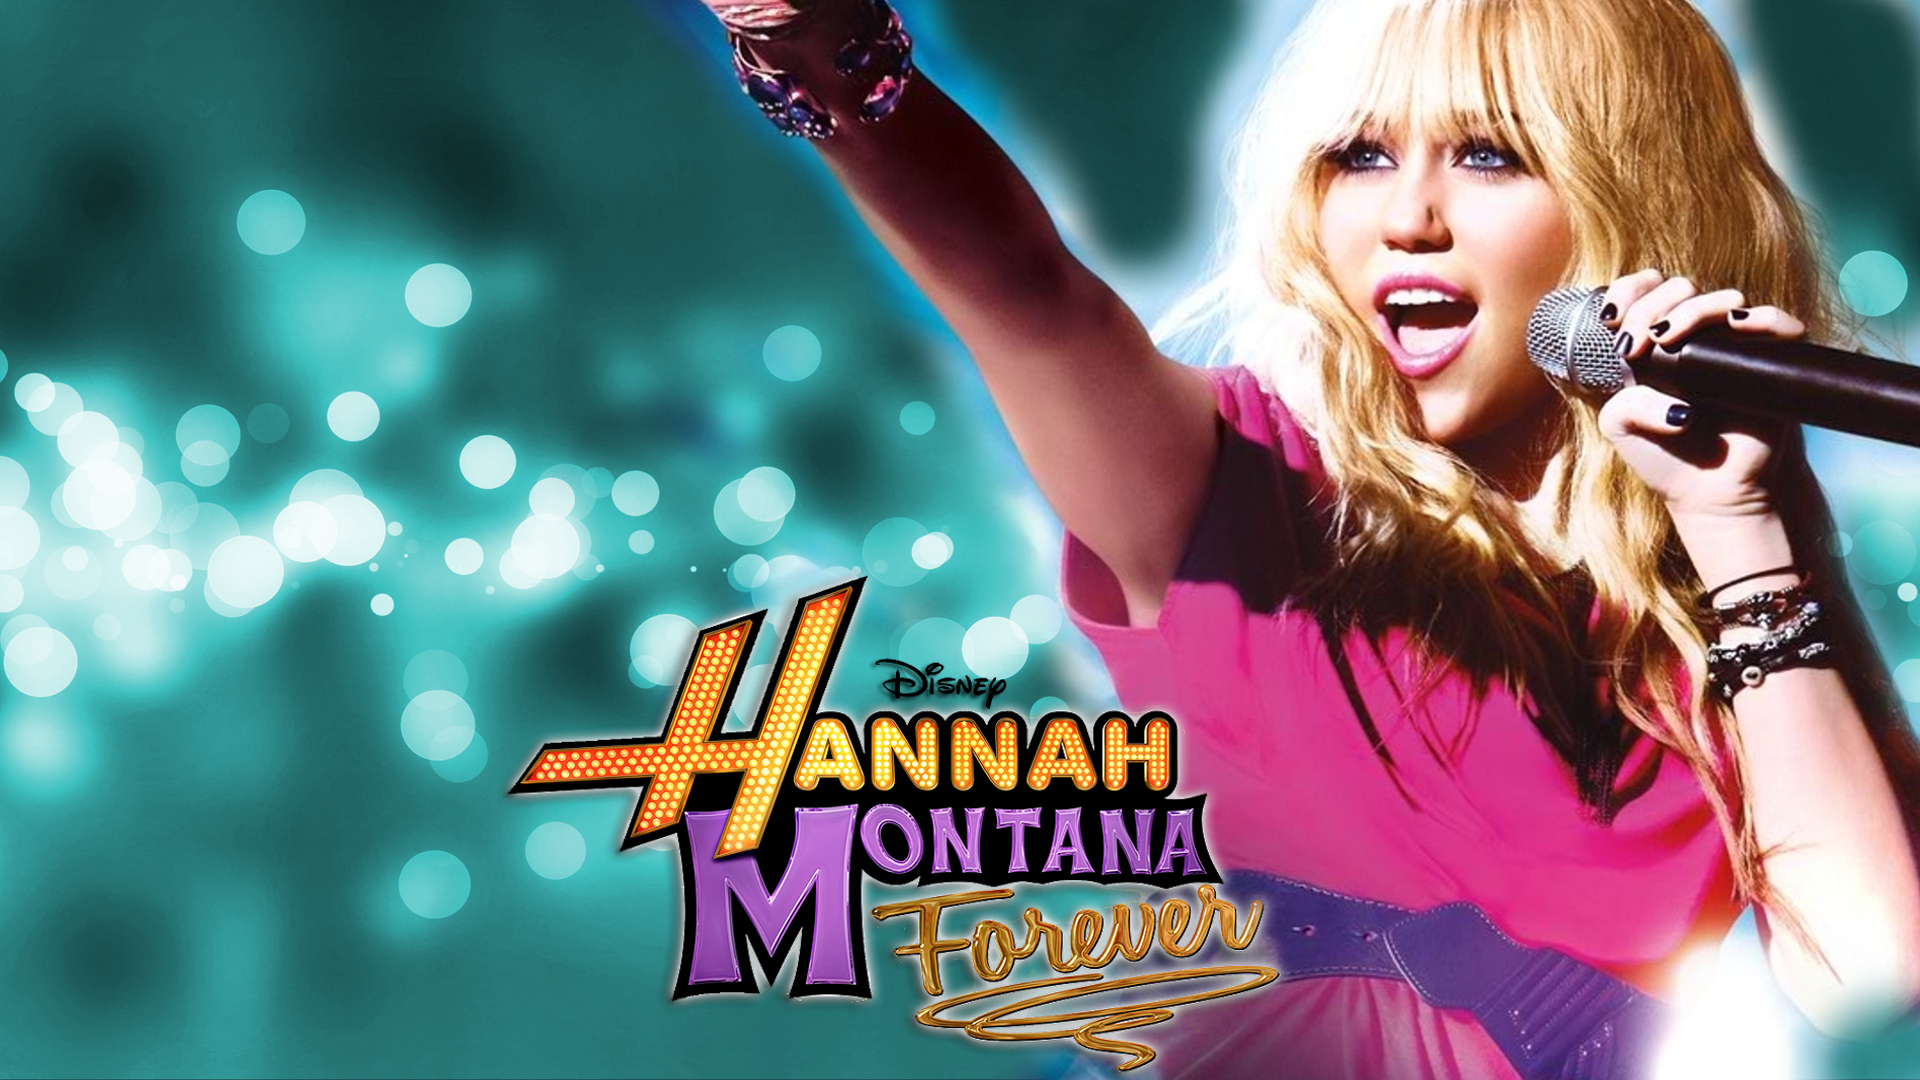 cool images hannah montana - photo #26